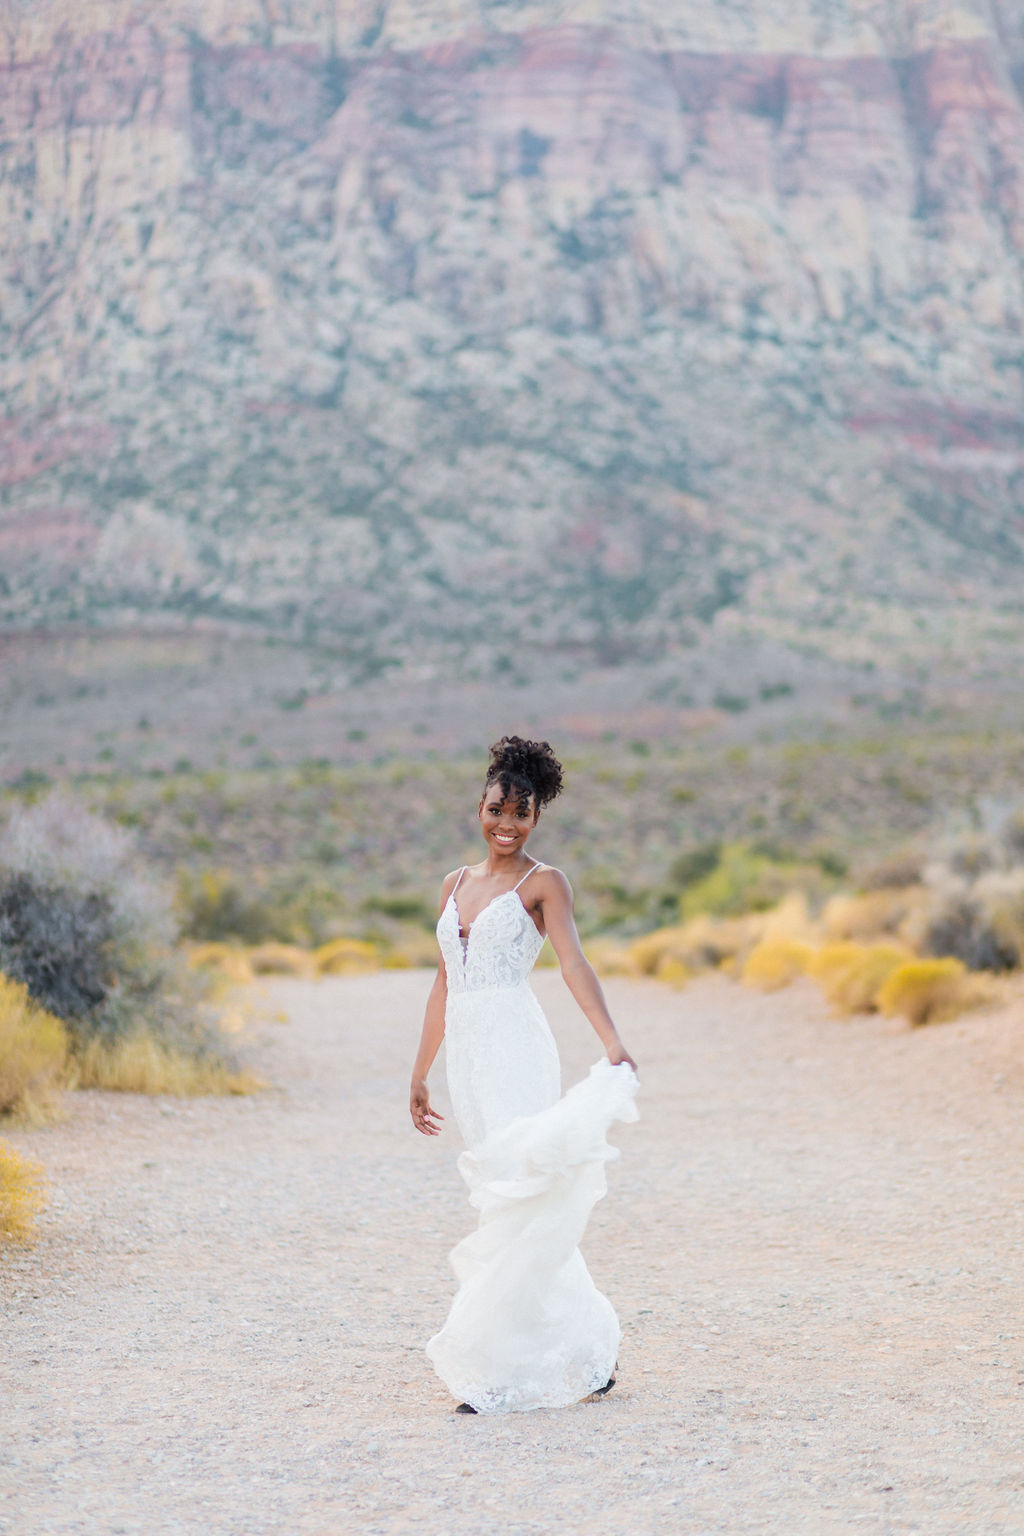 Edgy Romantic Wedding Red Rock Canyon Las Vegas Bride Elizabeth Burgi Photography 16